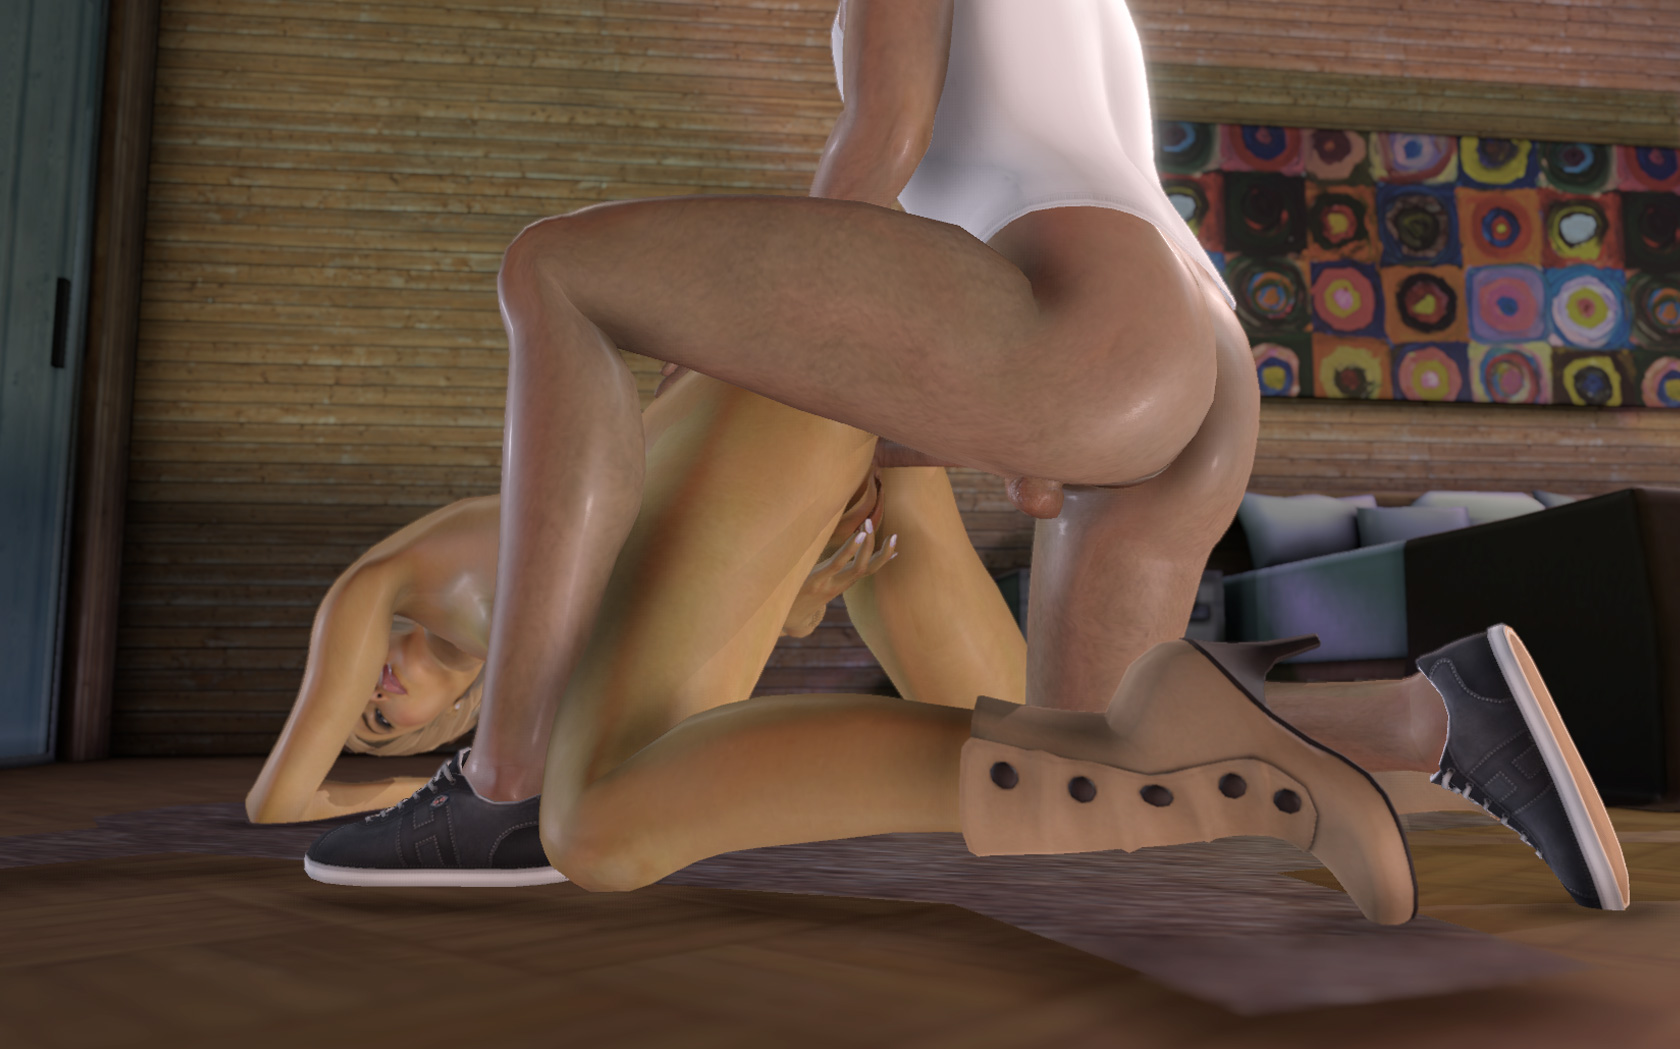 Android Anime Porn Games Apps 3d sex games - interactive virtual sex simulations - 3d sexvilla